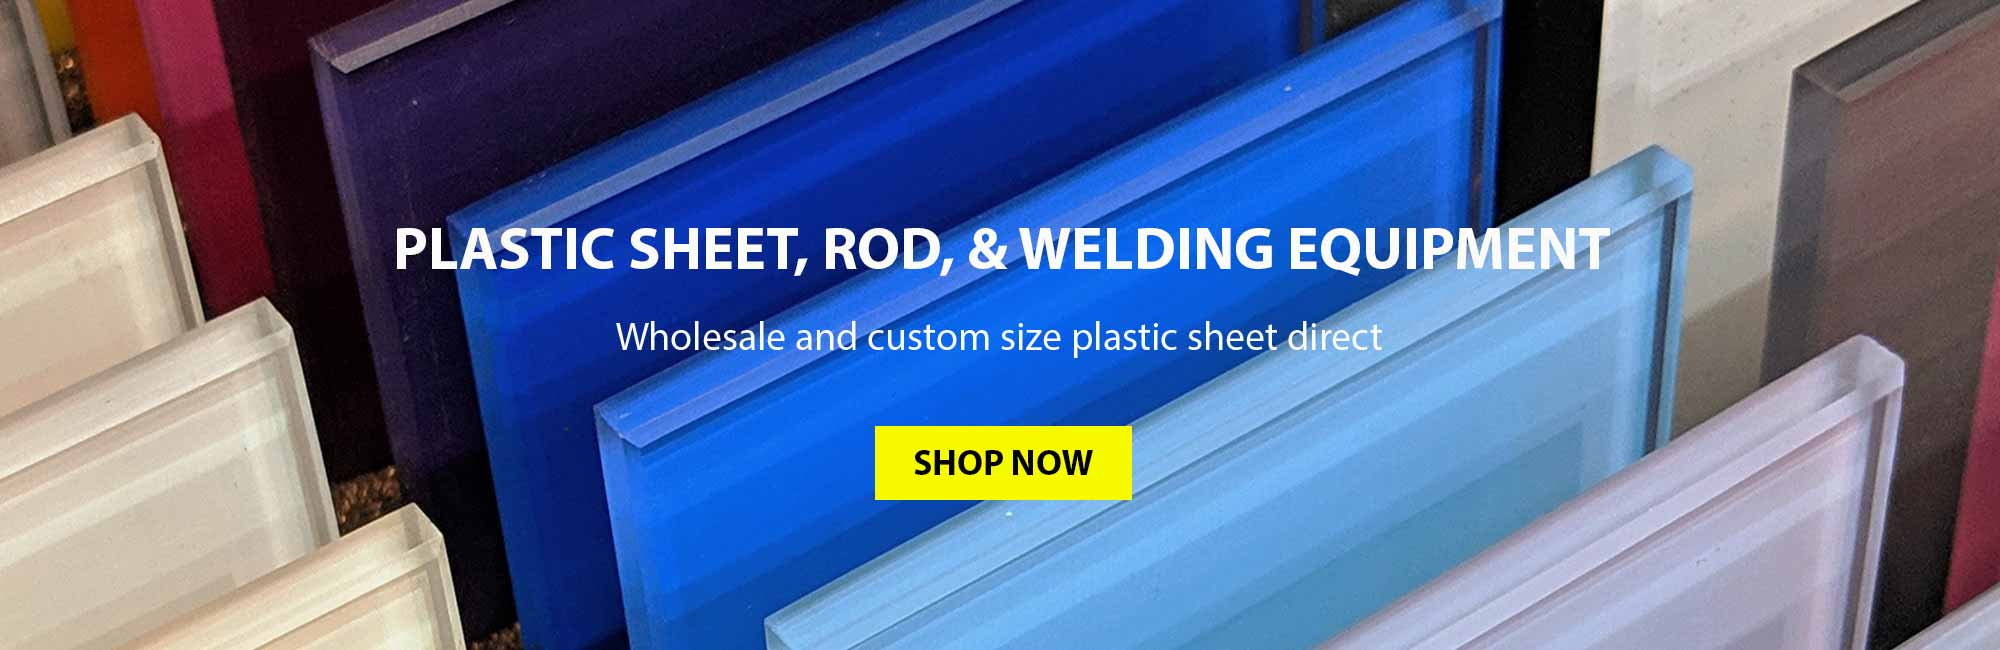 Plastic Warehouse, plastic sheet, rod and welding products direct. Wholesale and customer size plastics